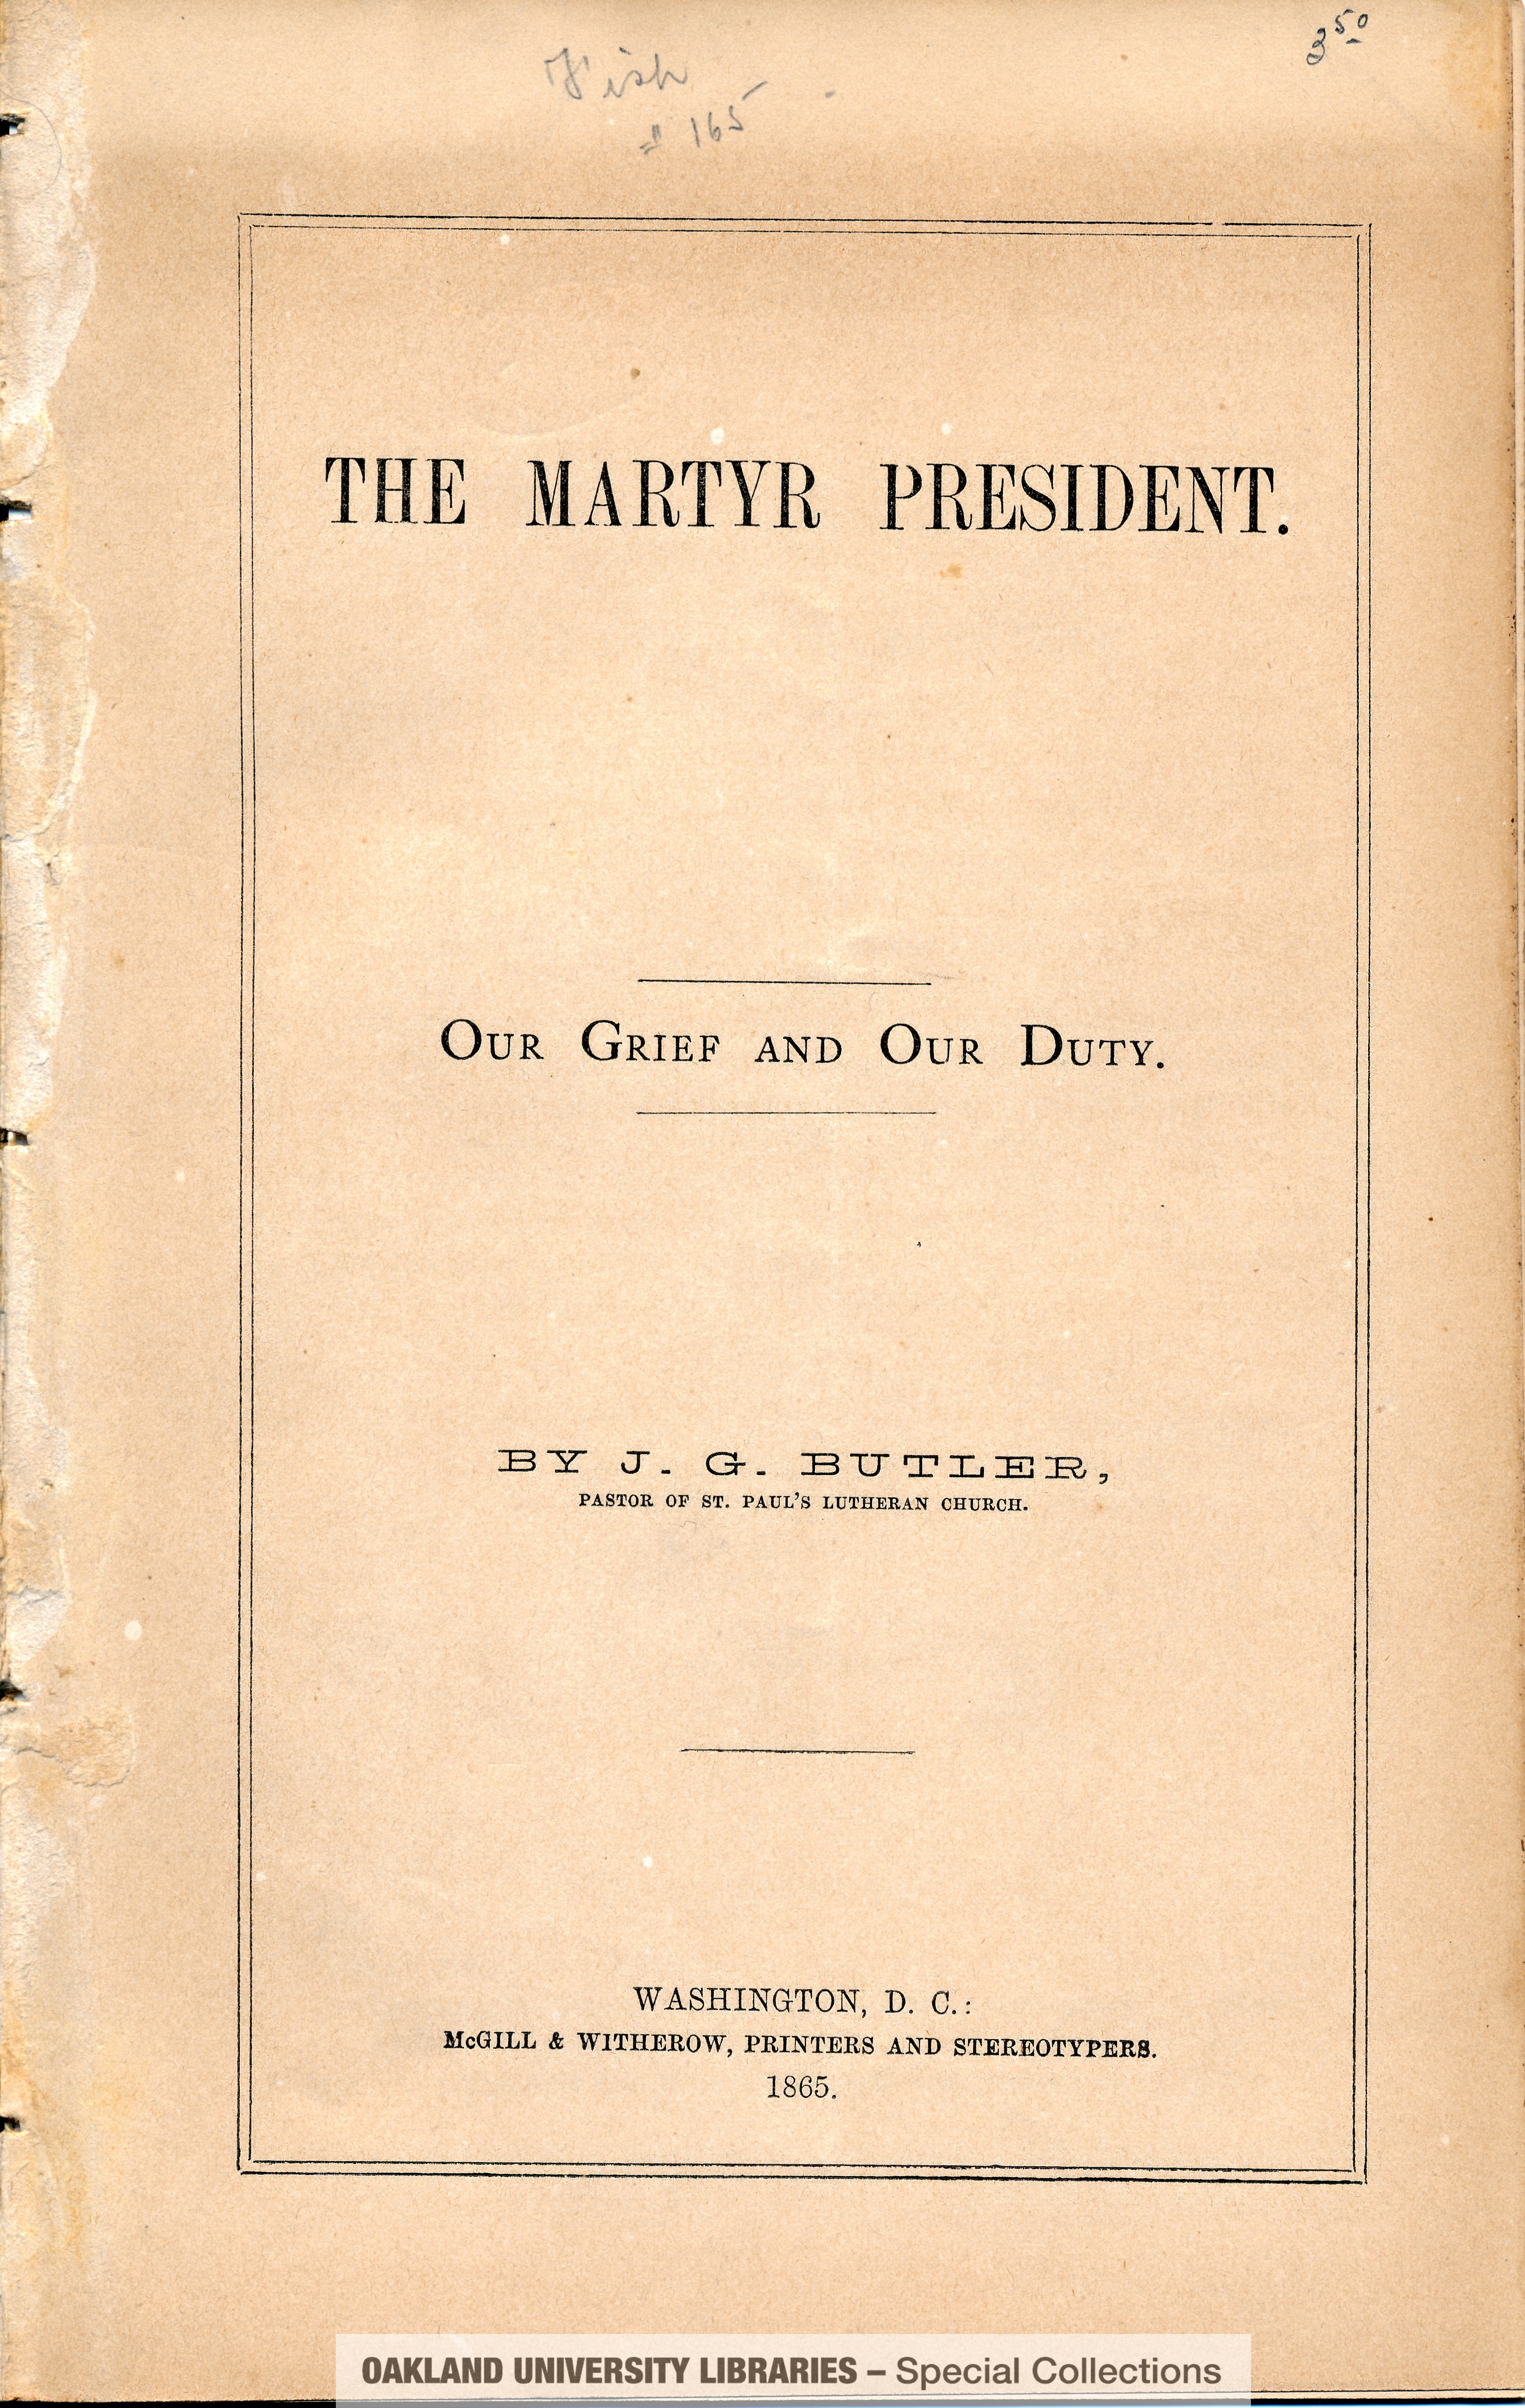 The Martyr President: Our Grief and Our Duty